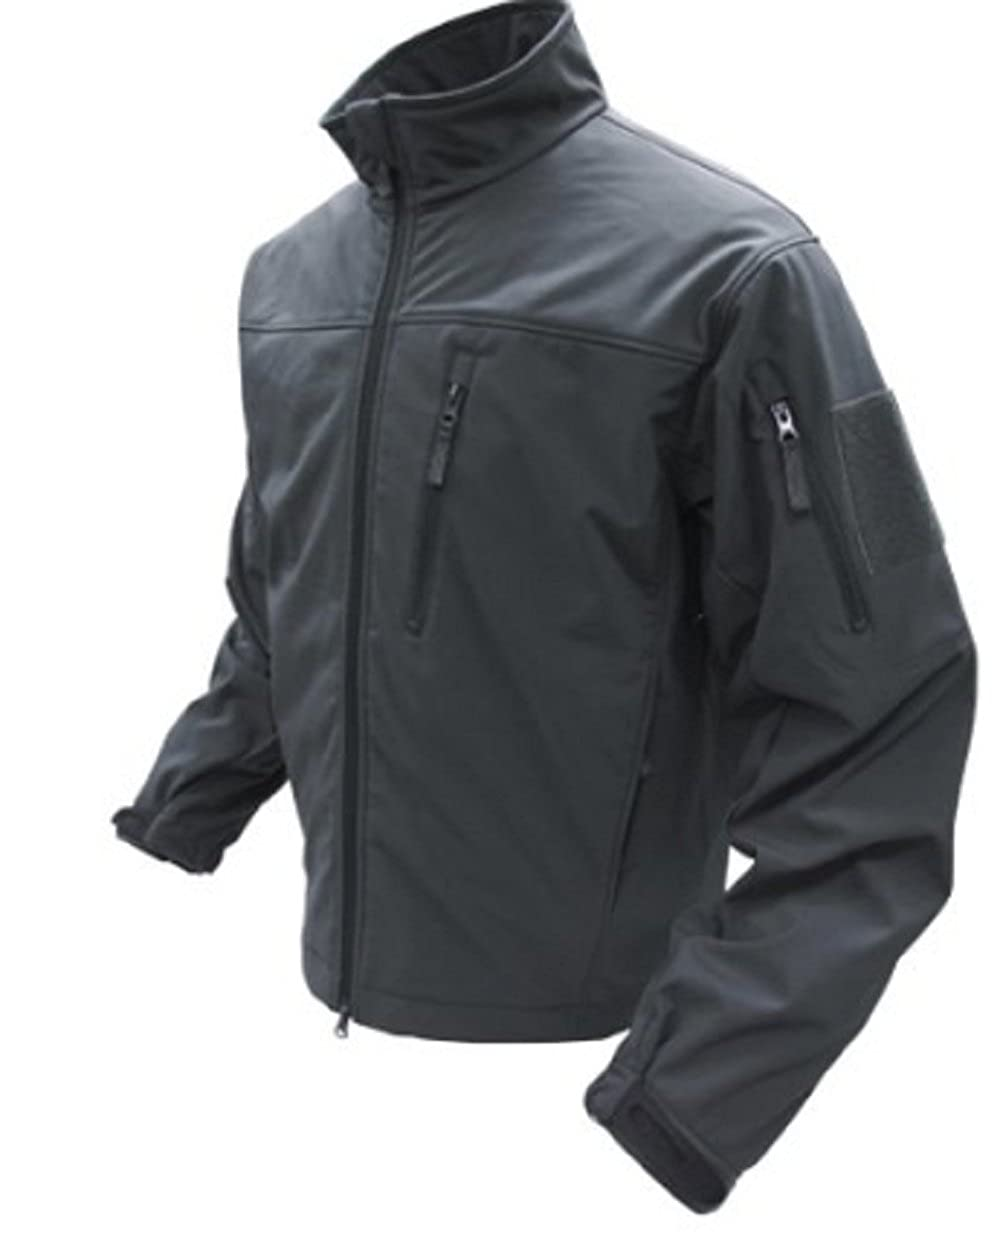 SUMMIT SOFTSHELL JACKET BK - L Condor 602-002-BLACK-LARGE